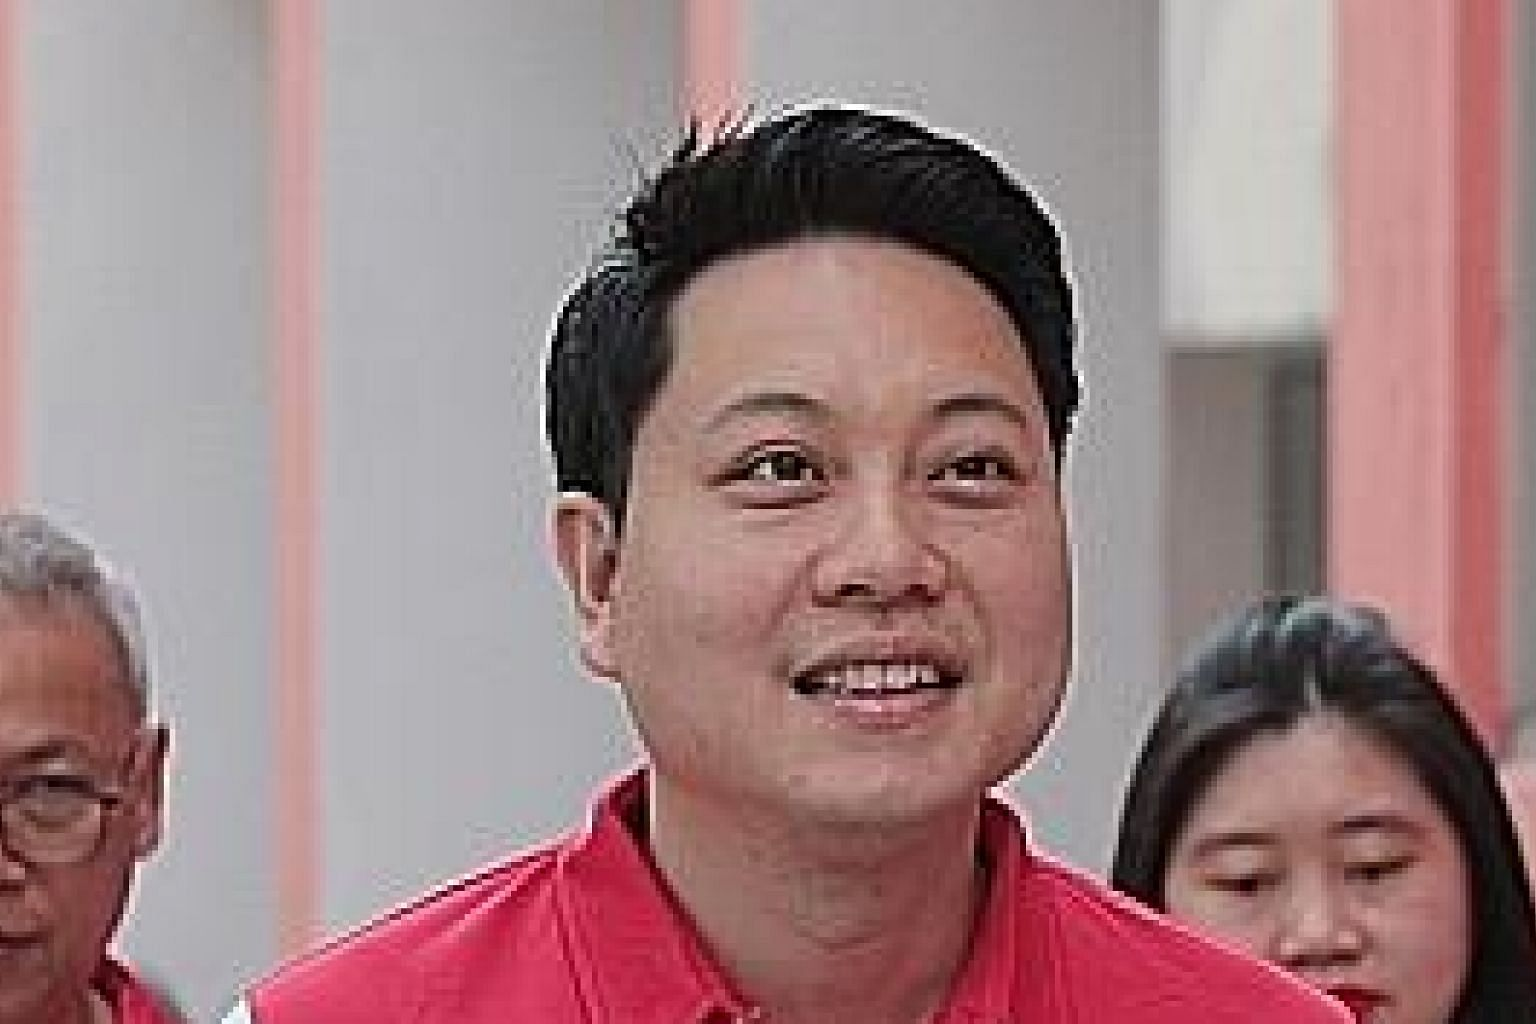 Mr Daniel Teo's lawyers said he made the video on the spur of the moment and is remorseful for acting in a rash manner.